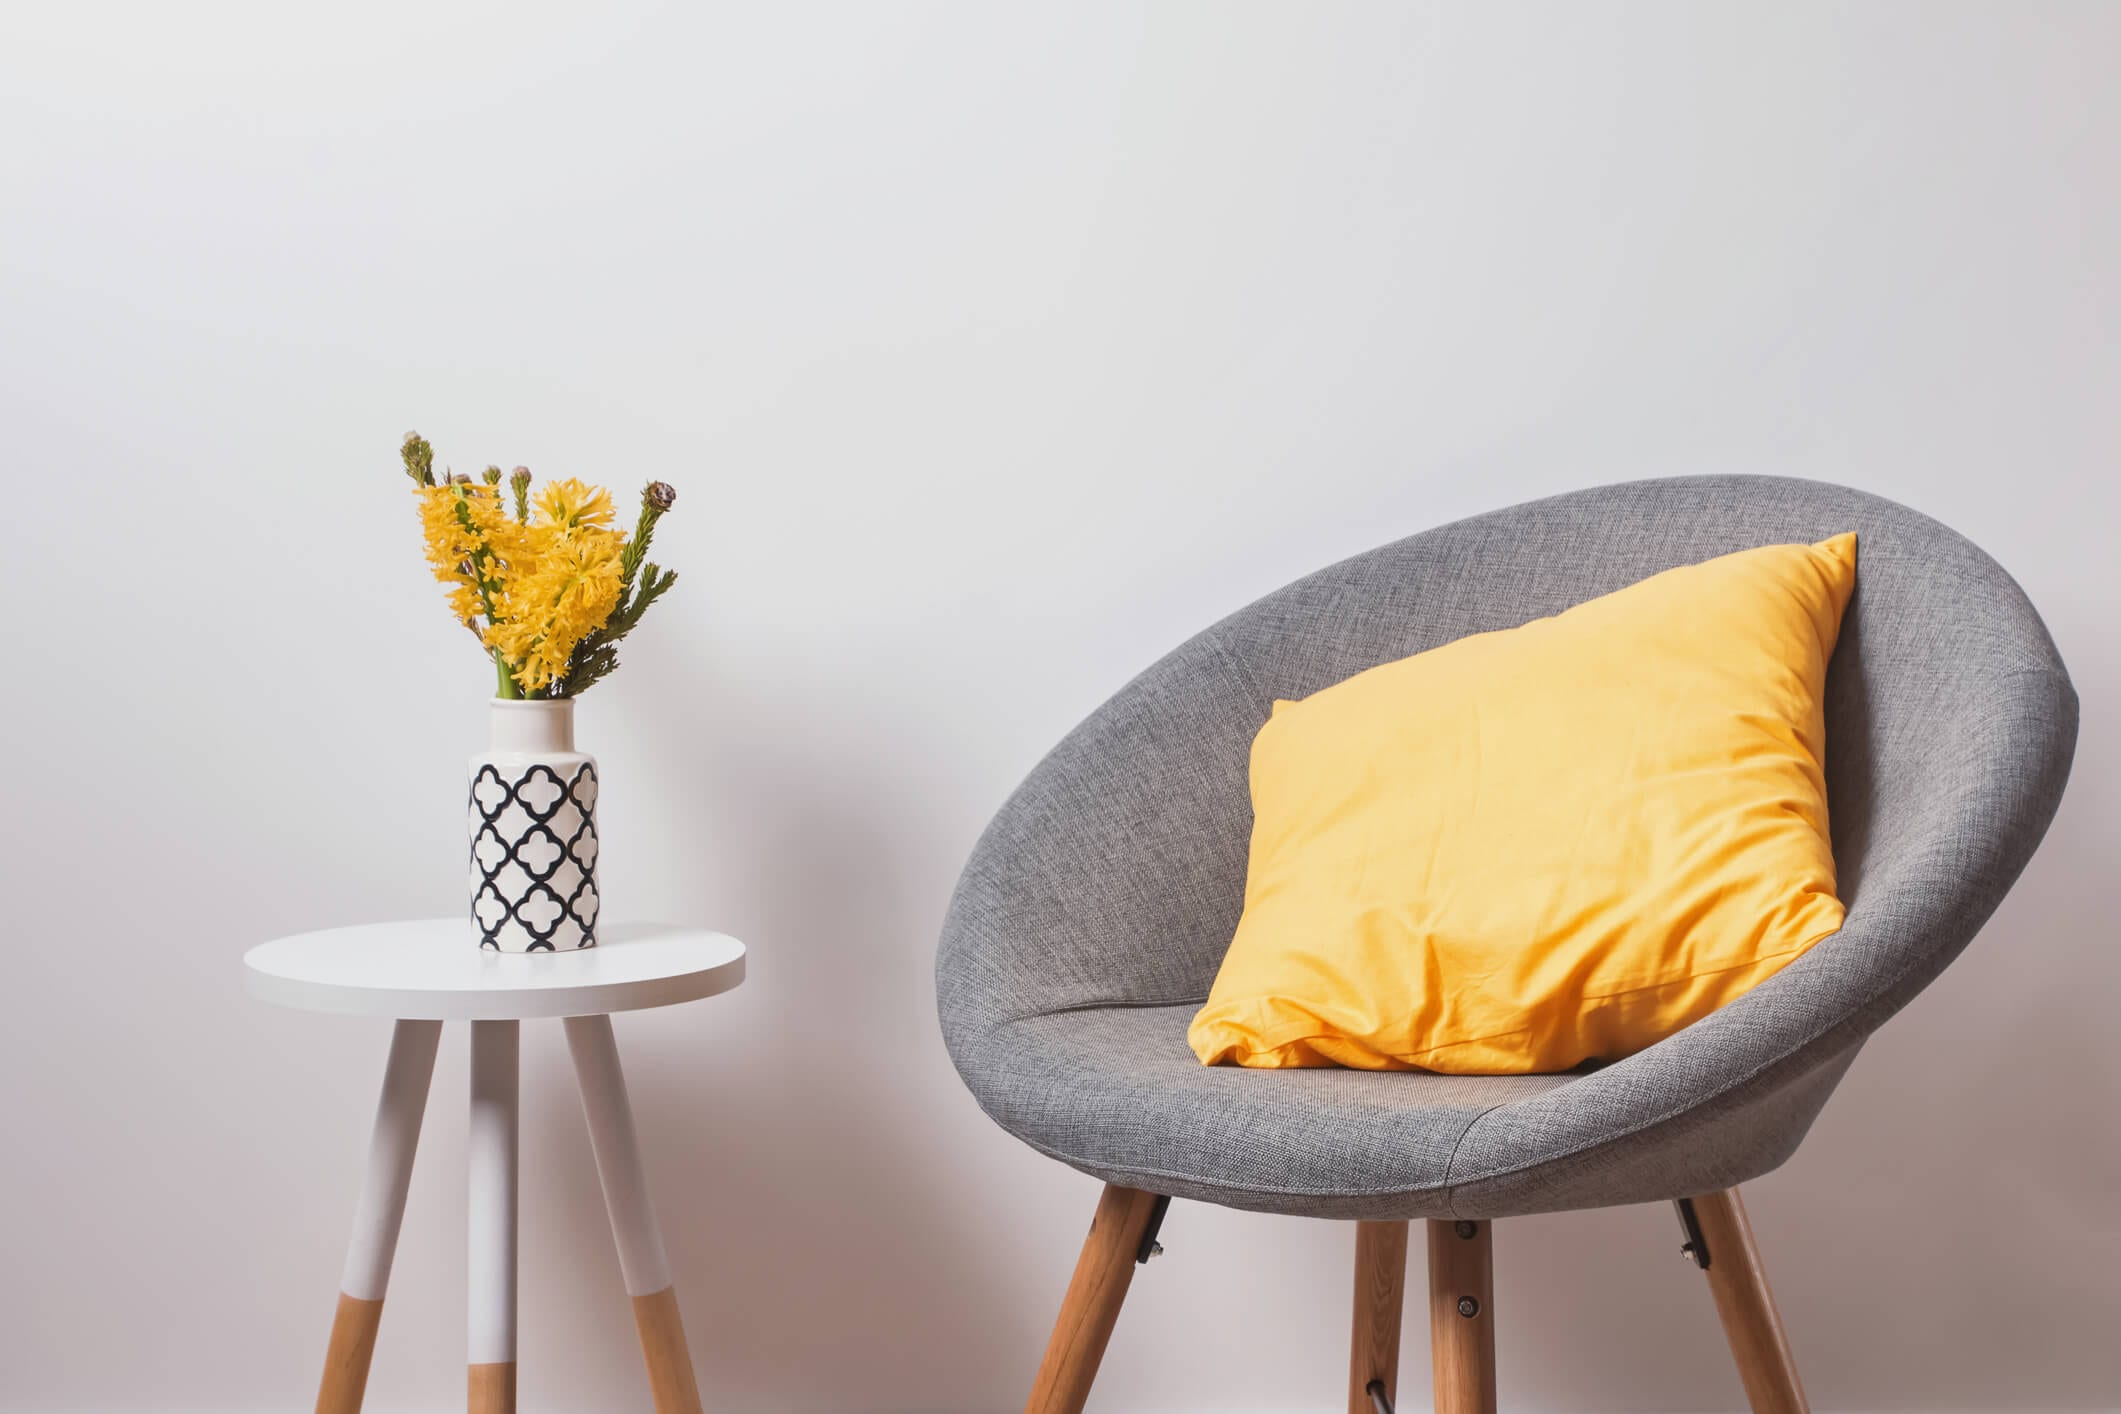 Cozy grey chair with yellow pillow and flowers in the vase standing near the white wall.